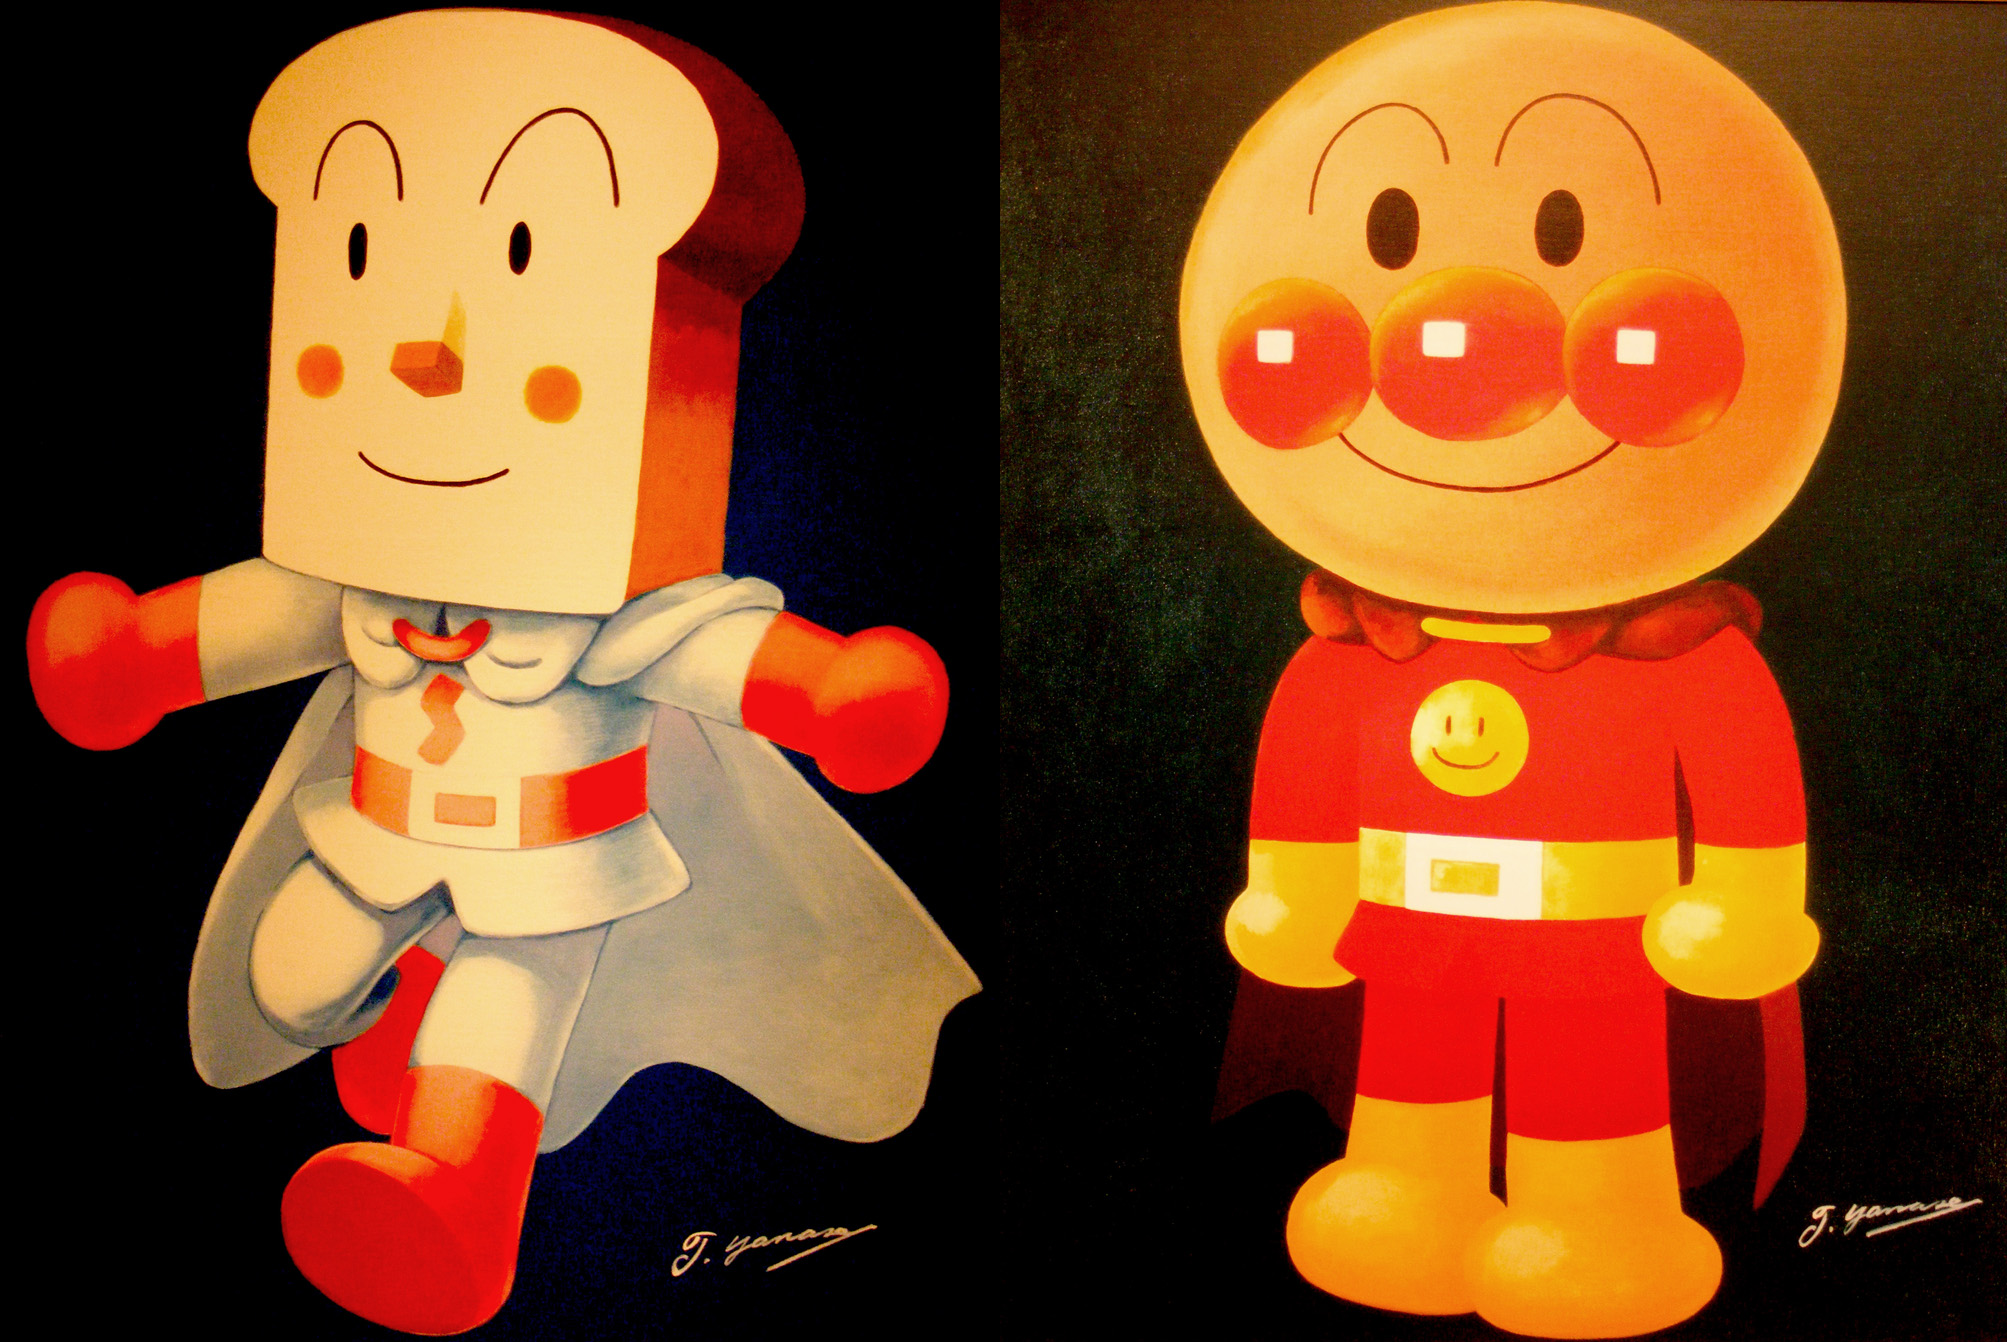 Two of the heroes from the anime series Go! Anpanman. The head of Shokupanman (left) is made out of white bread. Anpanman (right) is named after a Japanese sweet roll stuffed with red bean paste.